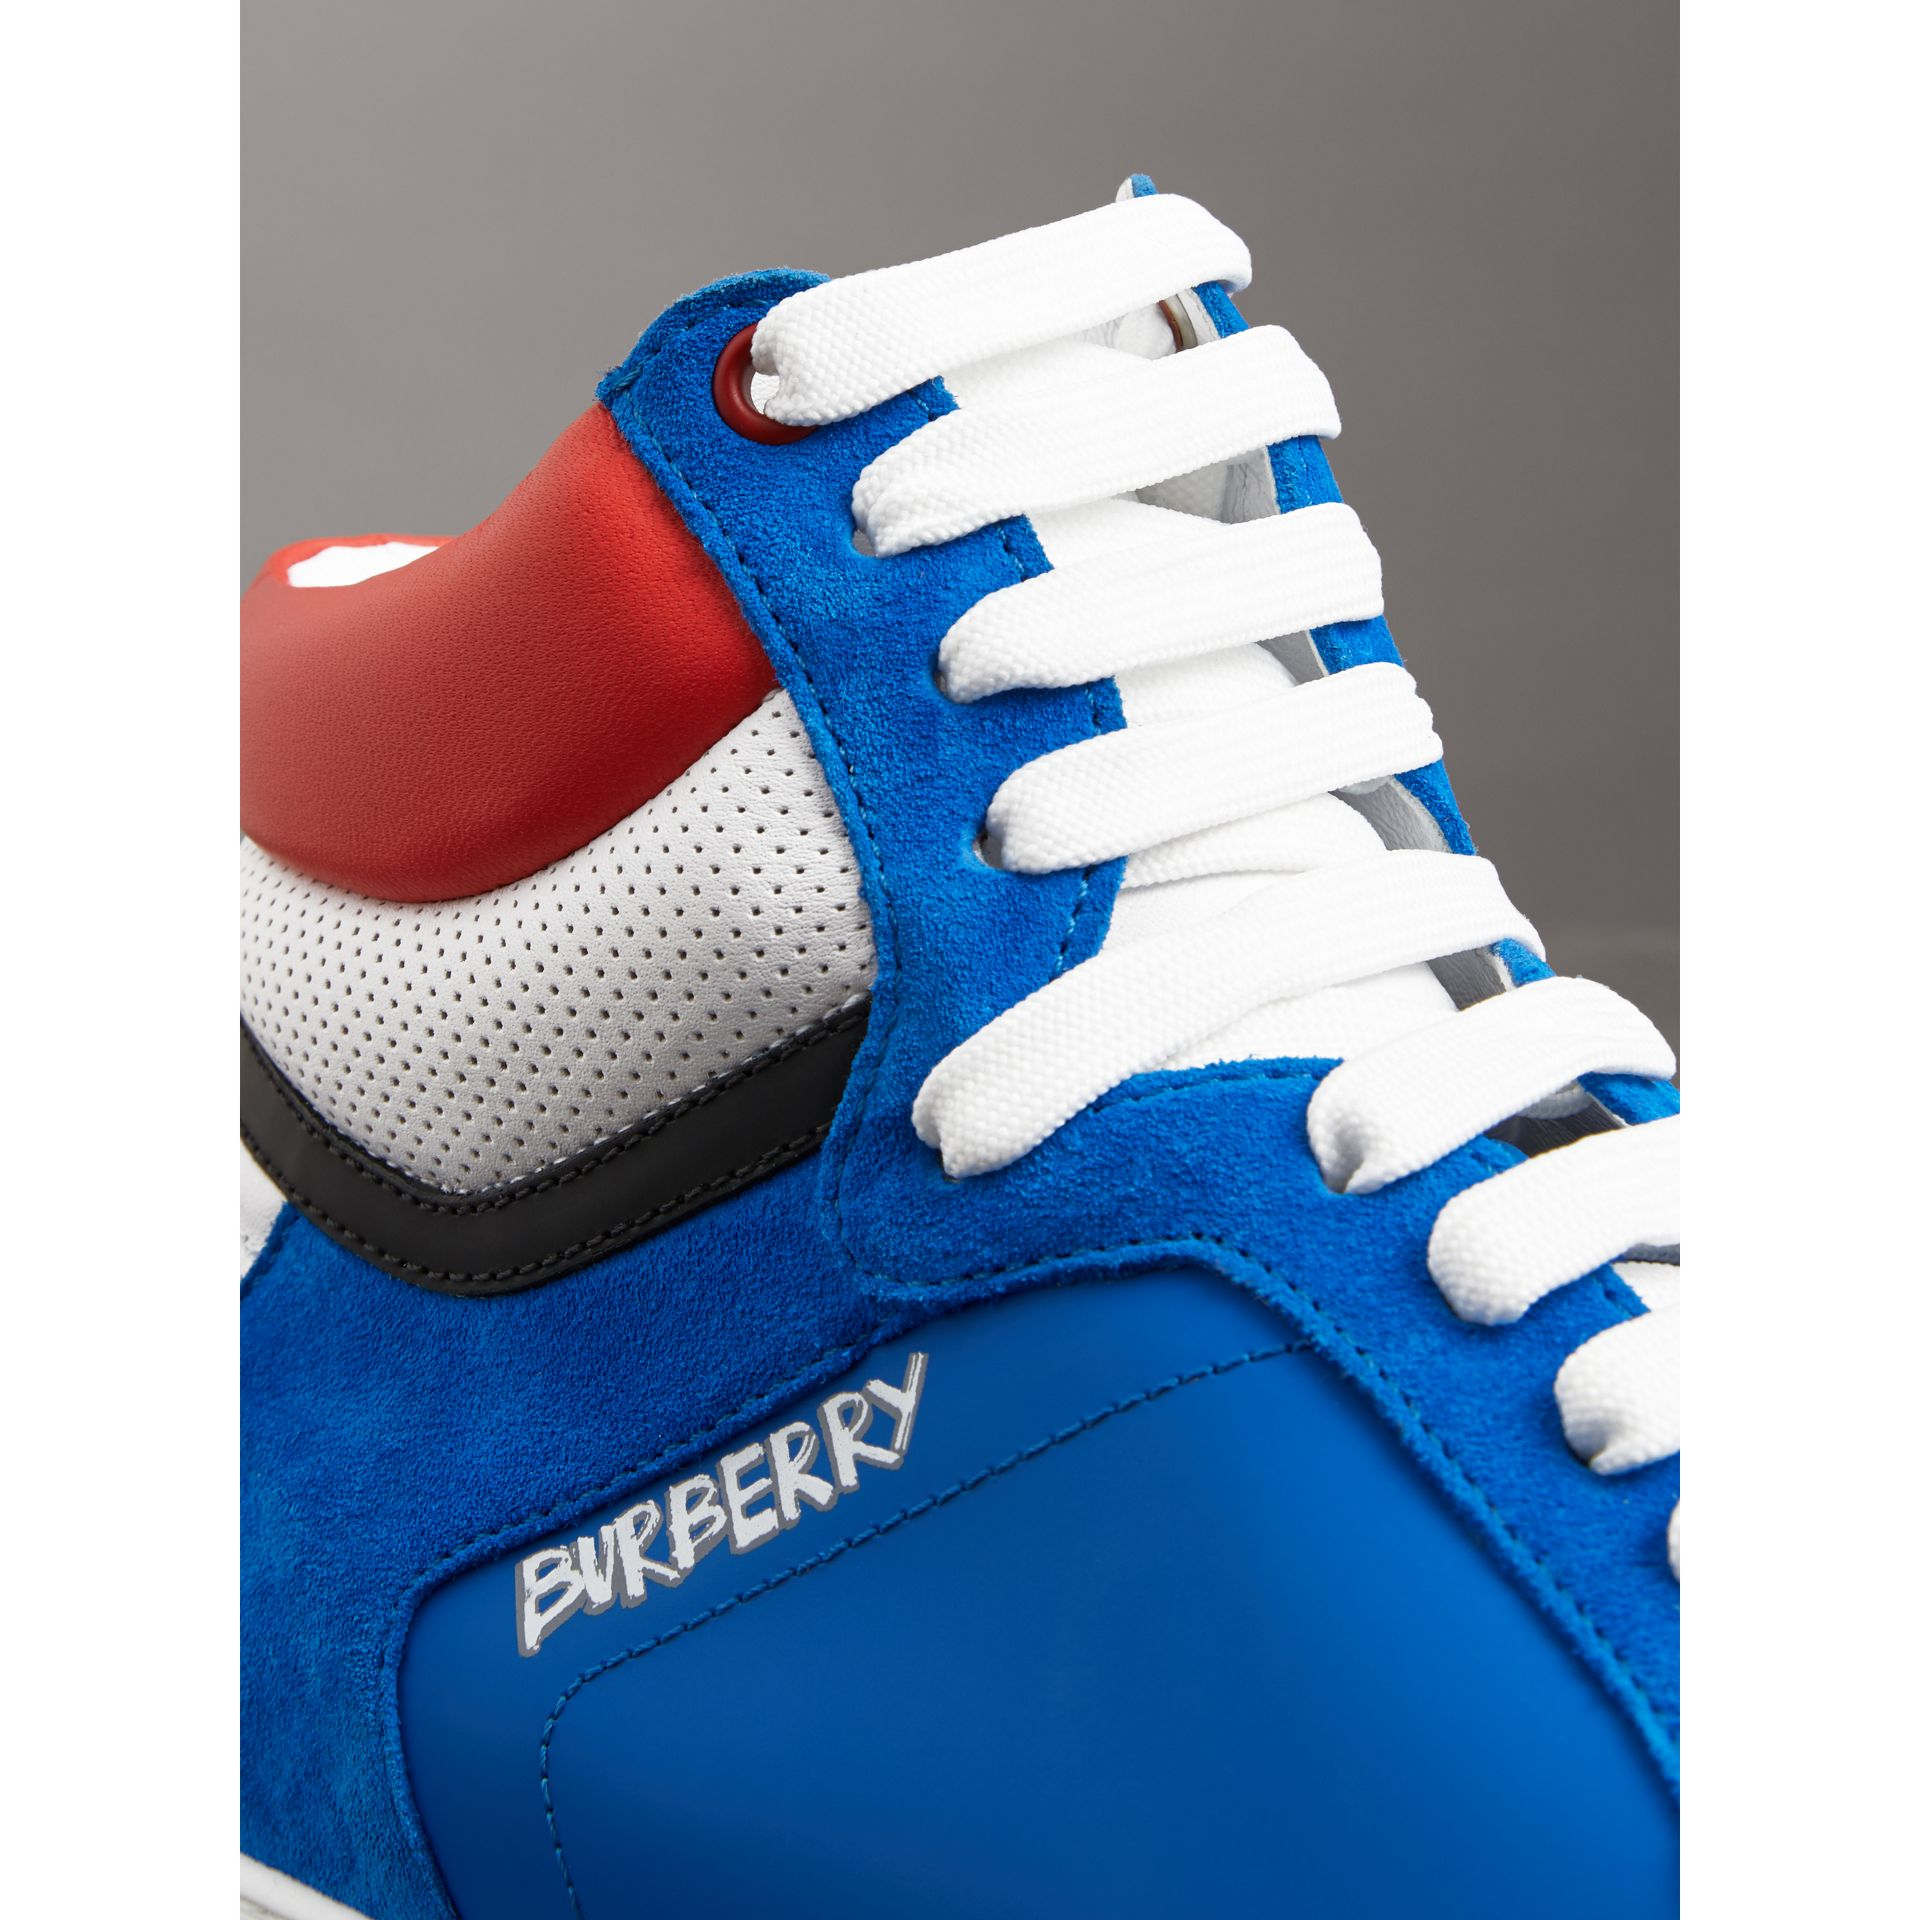 Leather and Suede High-top Sneakers in Bright Sky Blue - Men | Burberry United States - gallery image 1